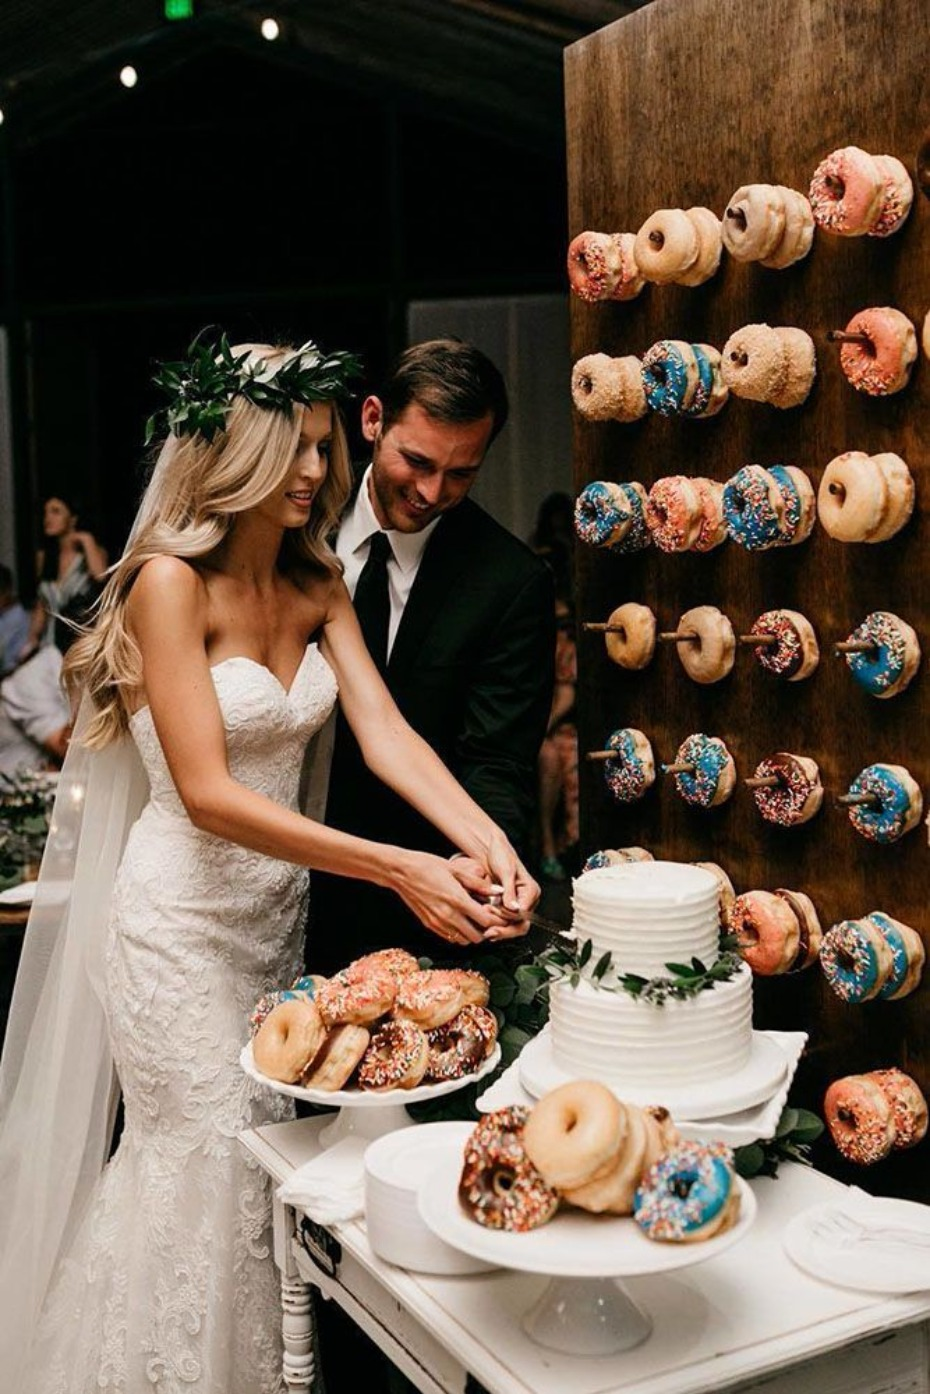 Jake and Andy | Best Wedding Cake Cut Songs 2018